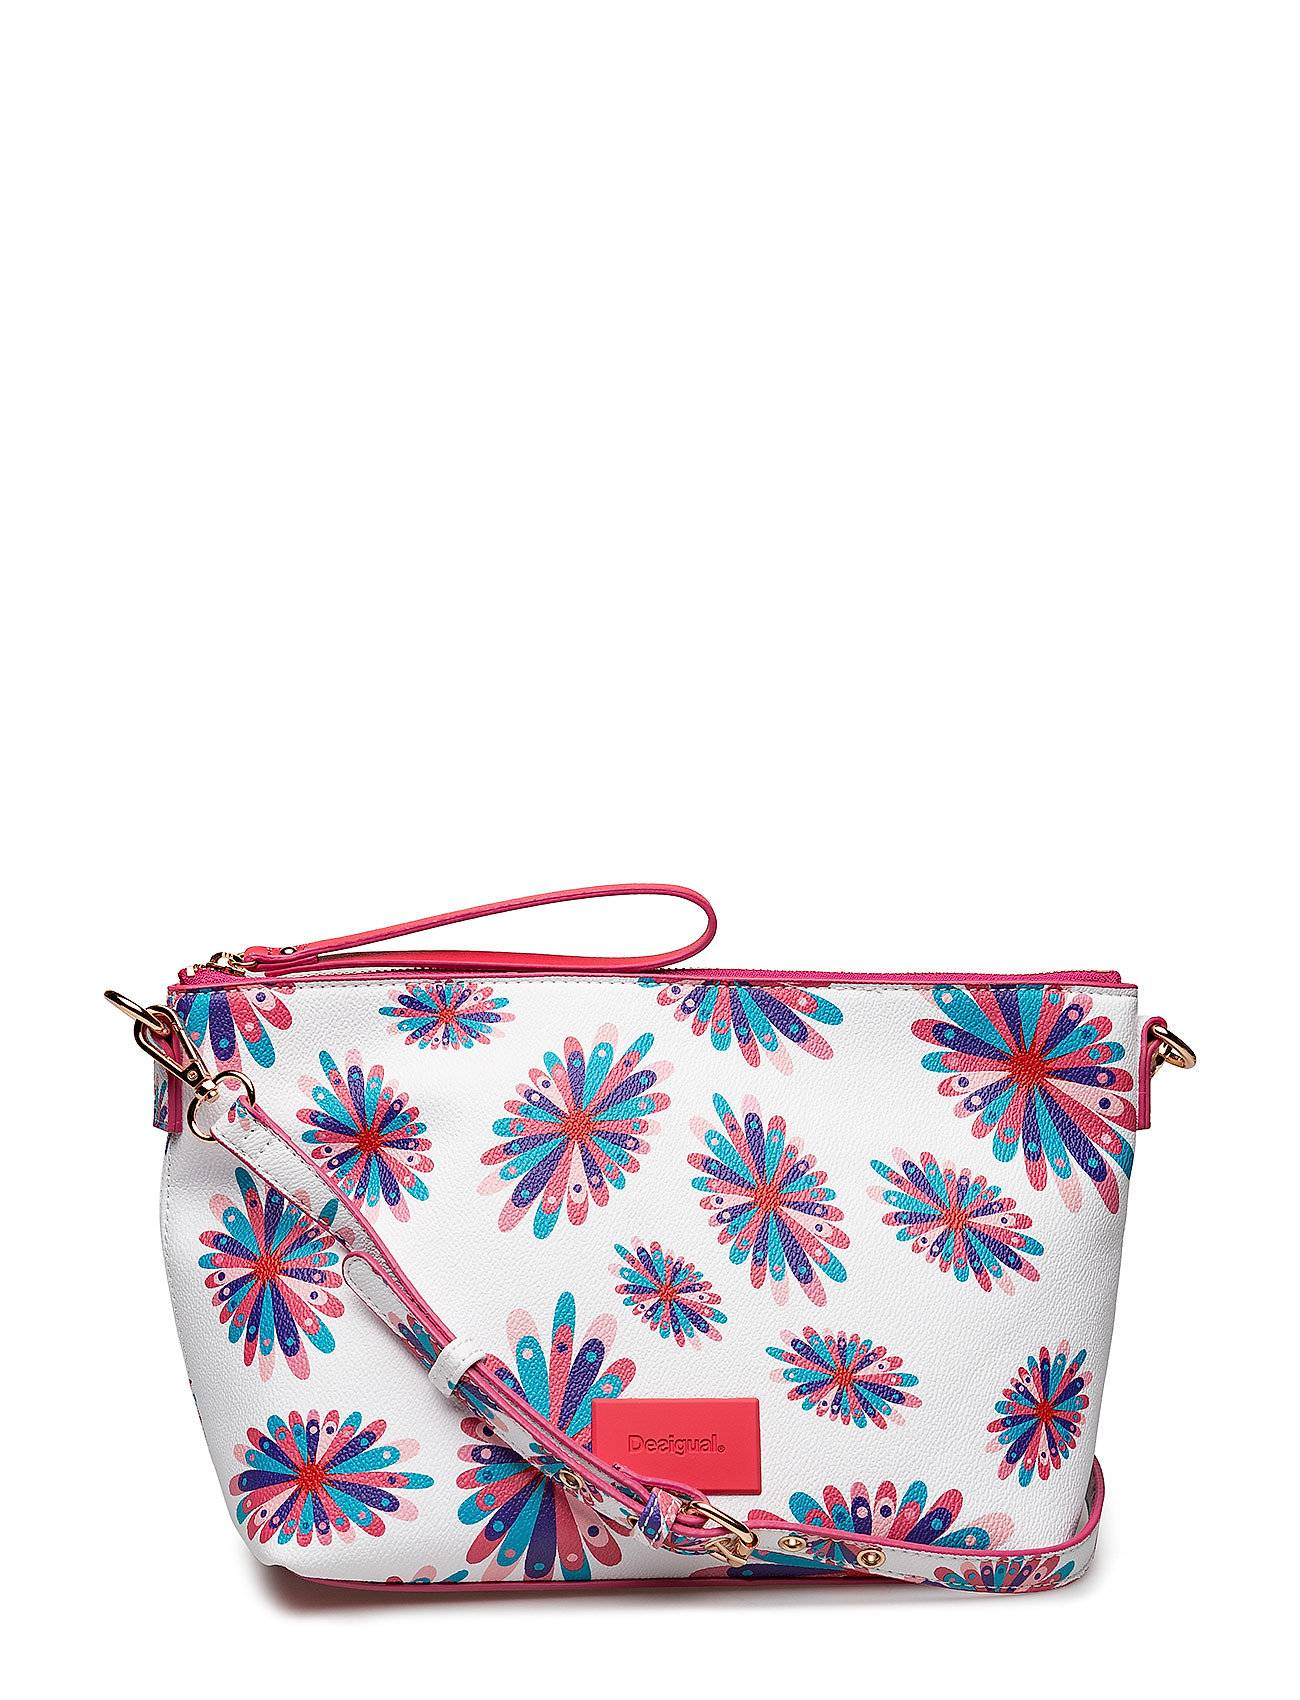 Desigual Accessories Bols Frisbee Catania